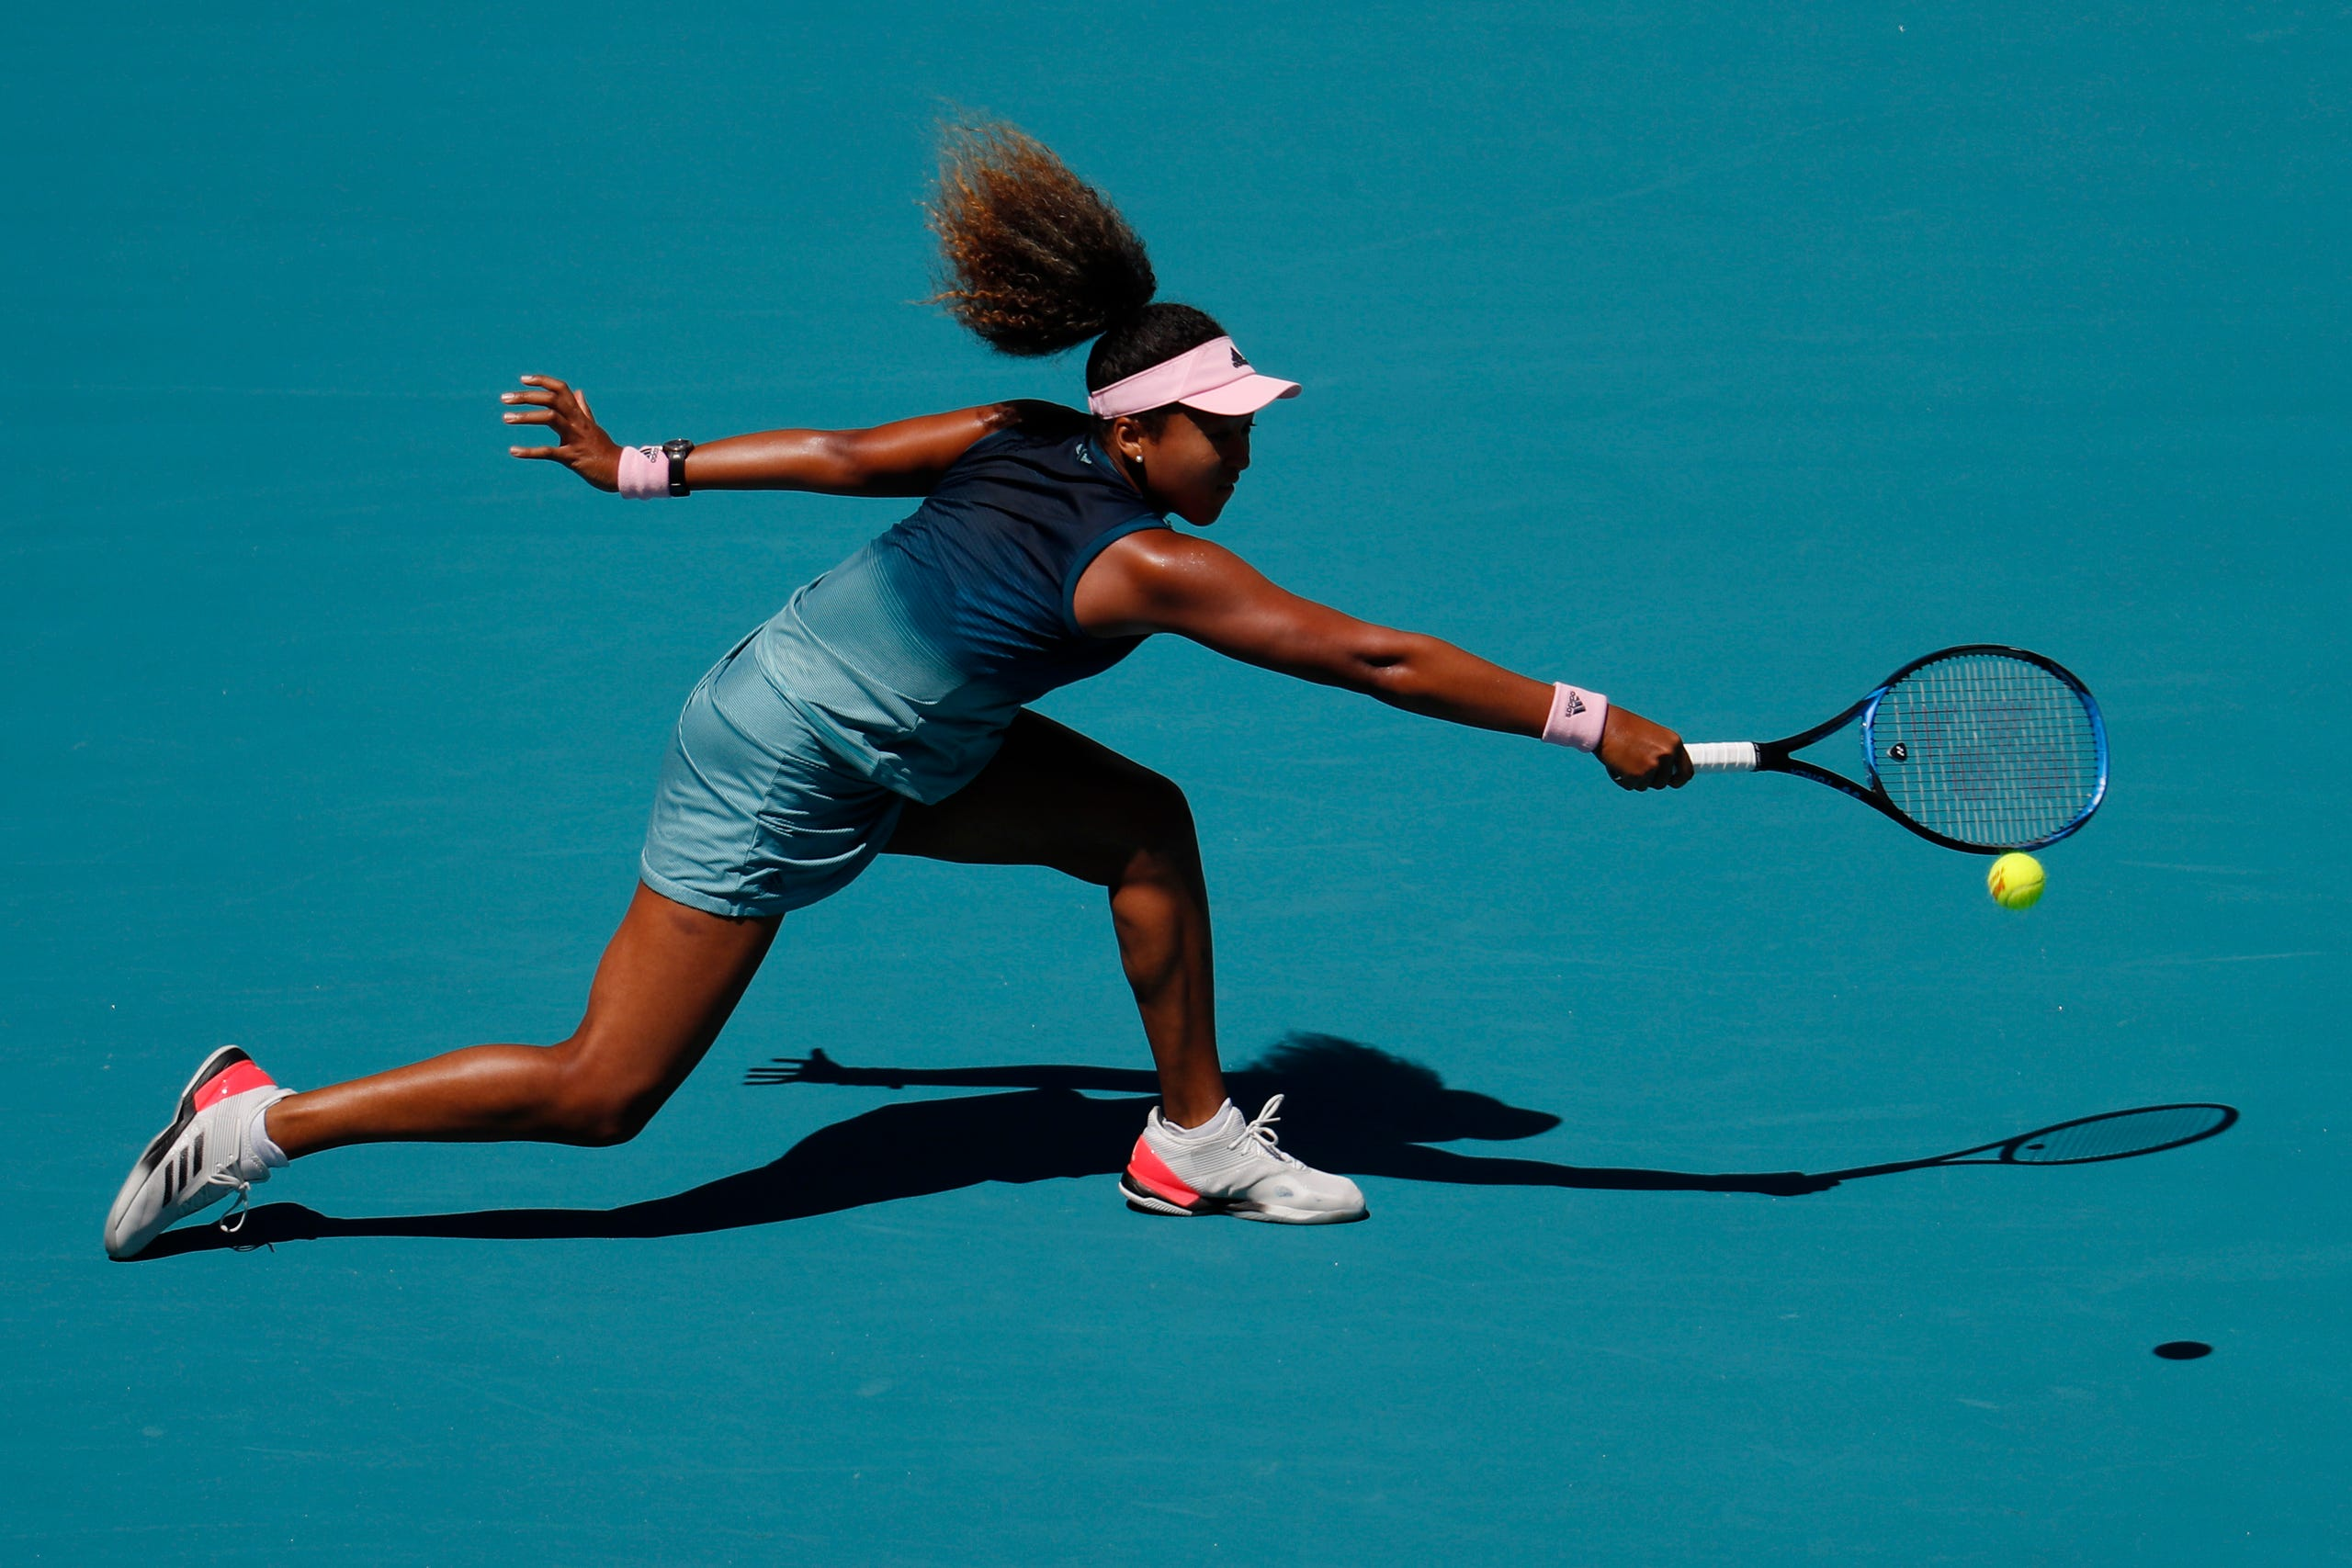 Naomi Osaka reaches for a backhand against Yanina Wickmayer of Belgium (not pictured) in the second round of the Miami Open at Miami Open Tennis Complex on March 22, 2019.